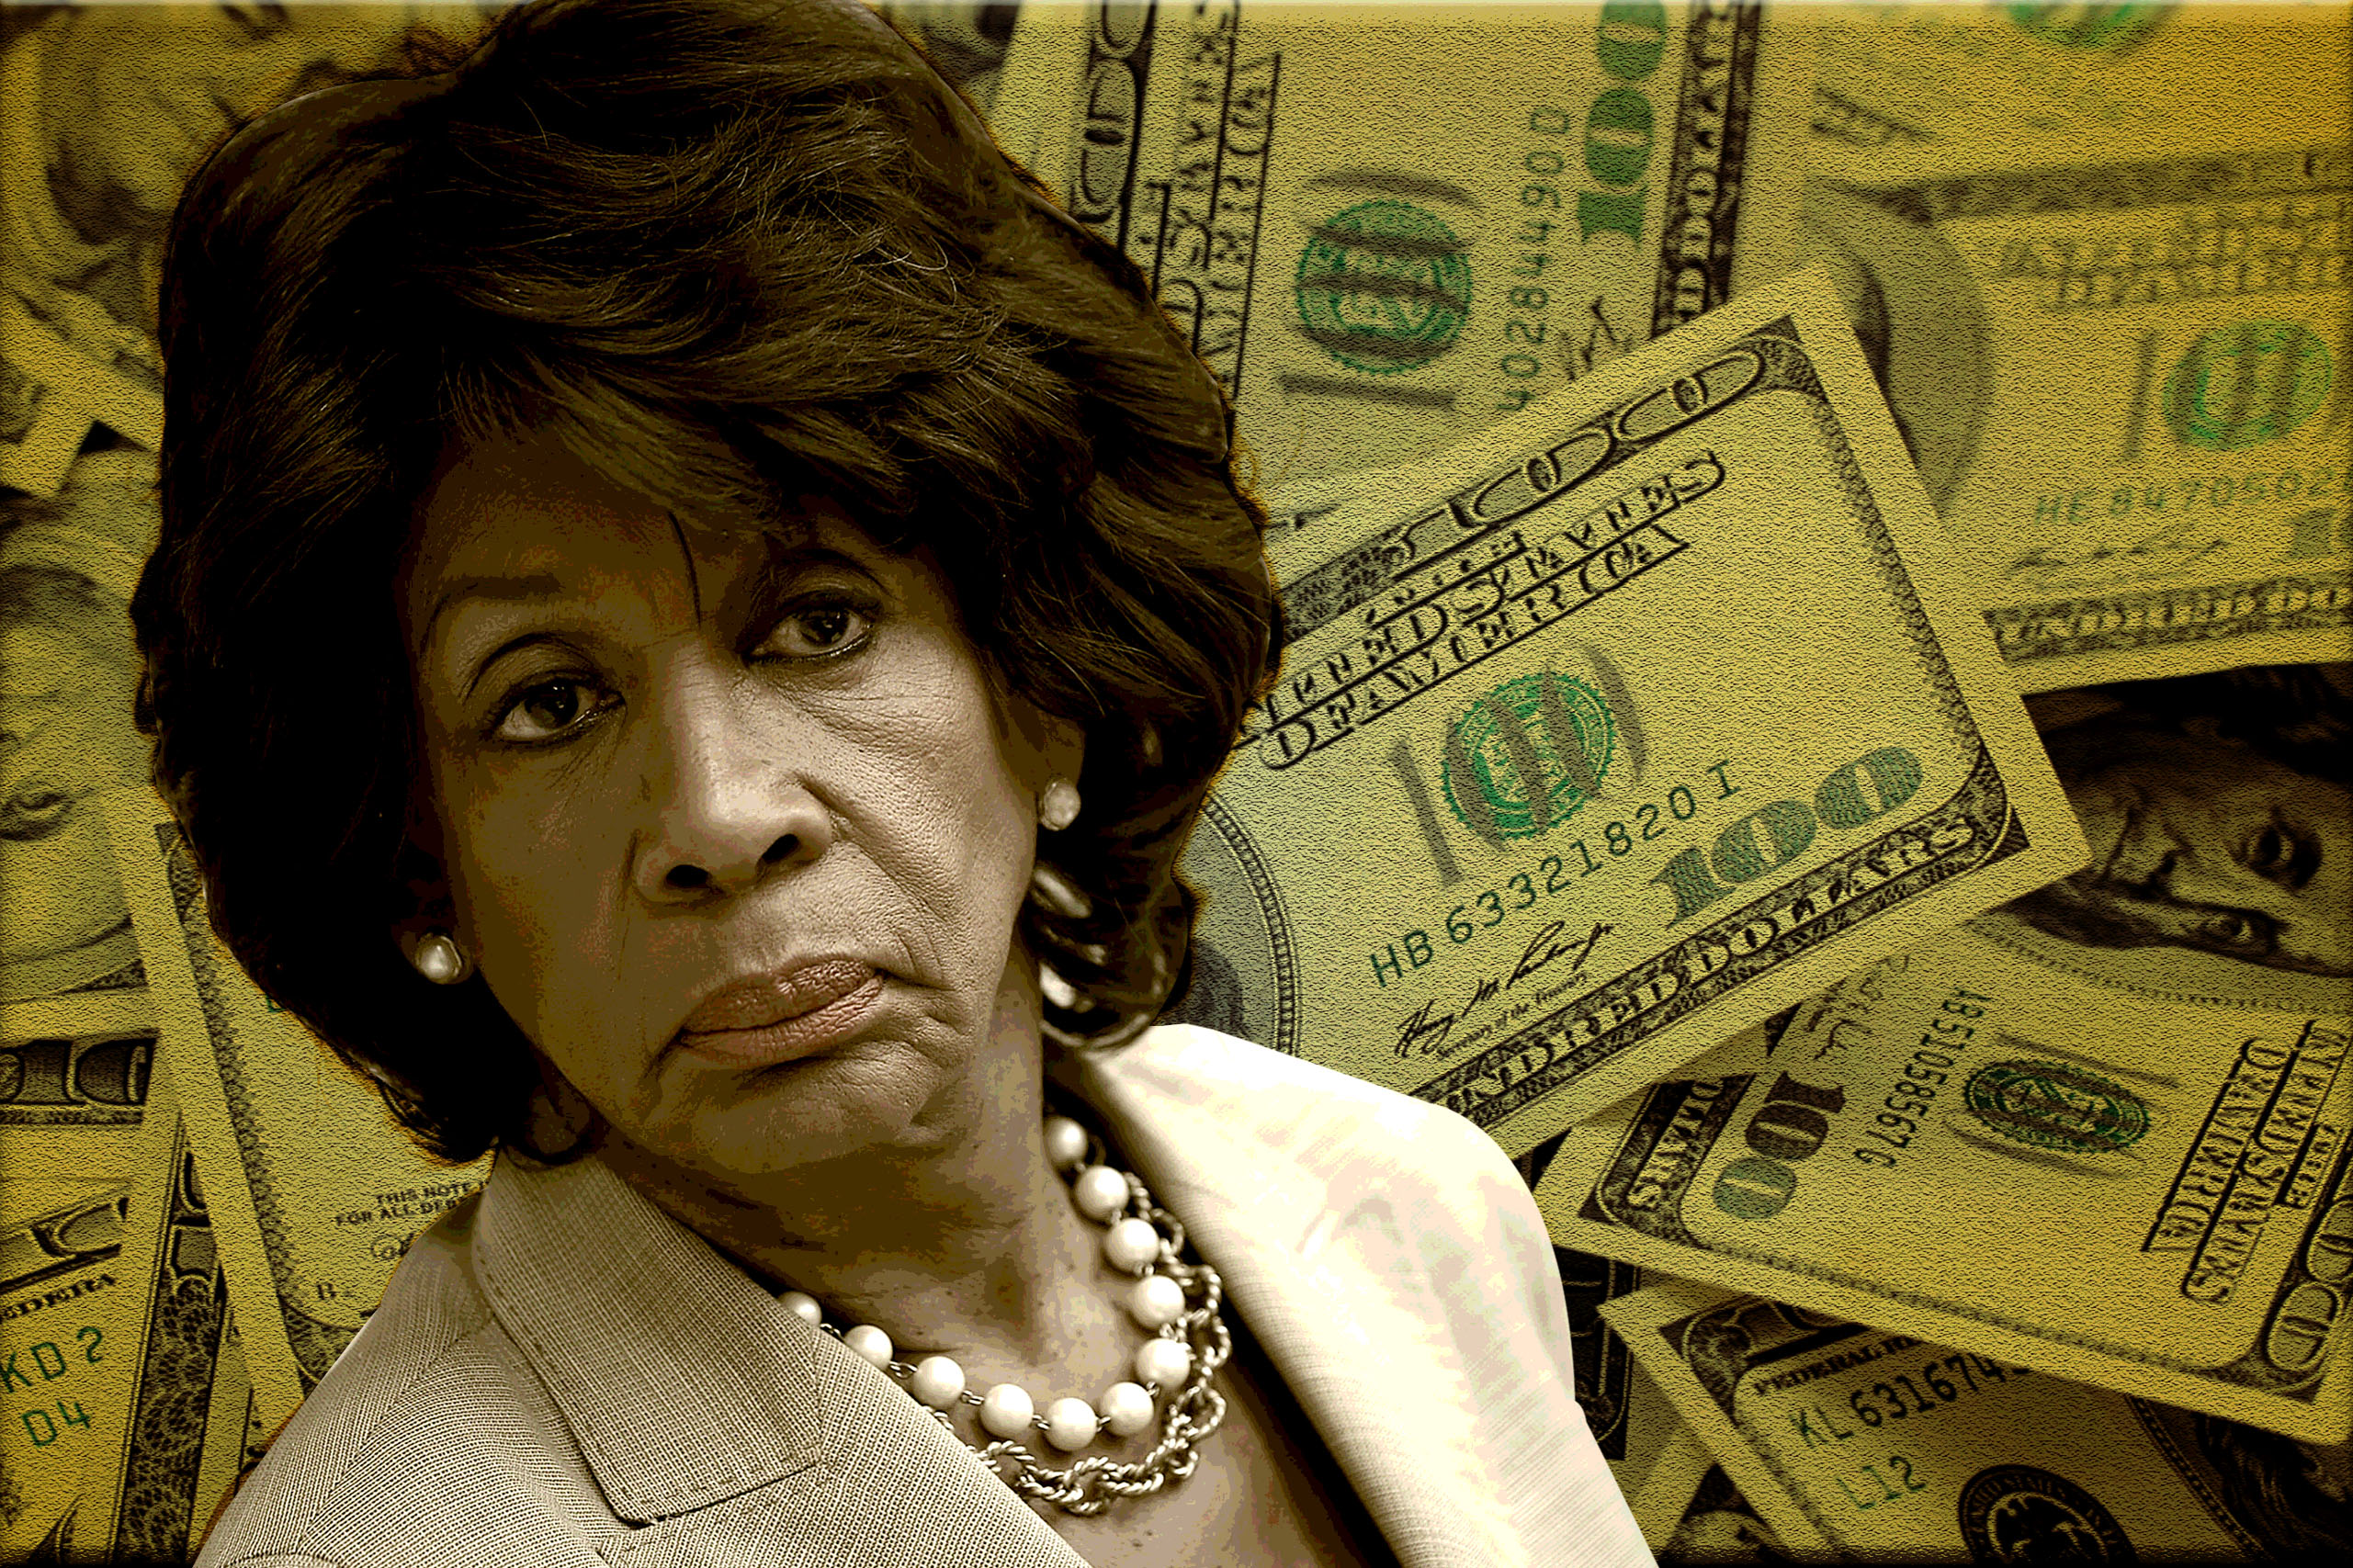 Democrat Maxine Walters Indicted On 3 Counts Of Violating Federal Ethics Codes & Congressional Rules — Political Vel Craft